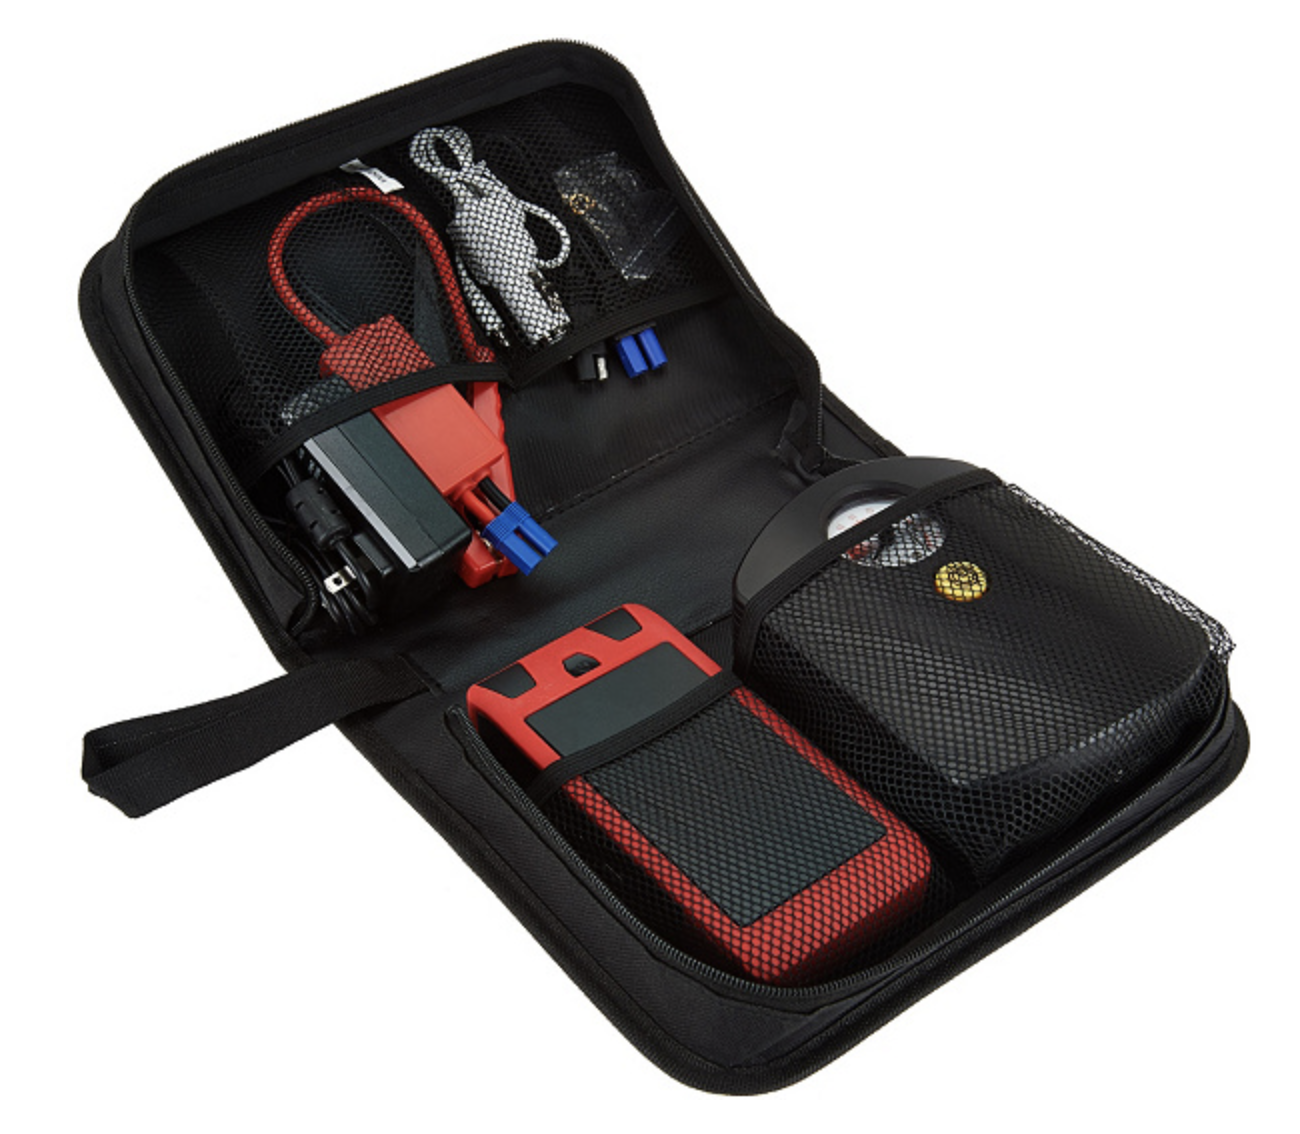 Primary image for QueBoost 41Wh Car Jump Starter Flashlight with Air Compressor Set in Case - NWOT